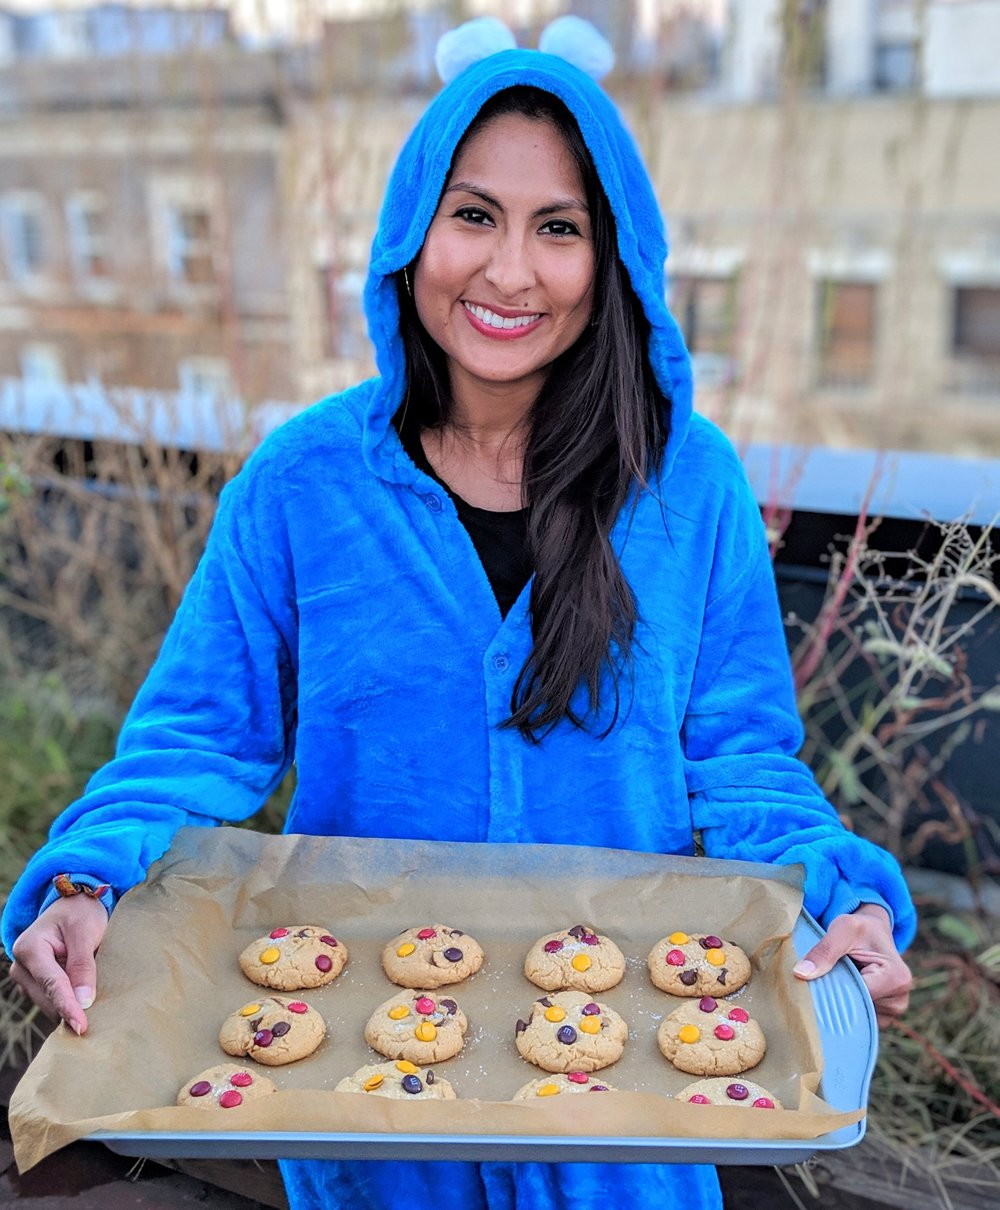 Your resident Cookie Monster, Cyn